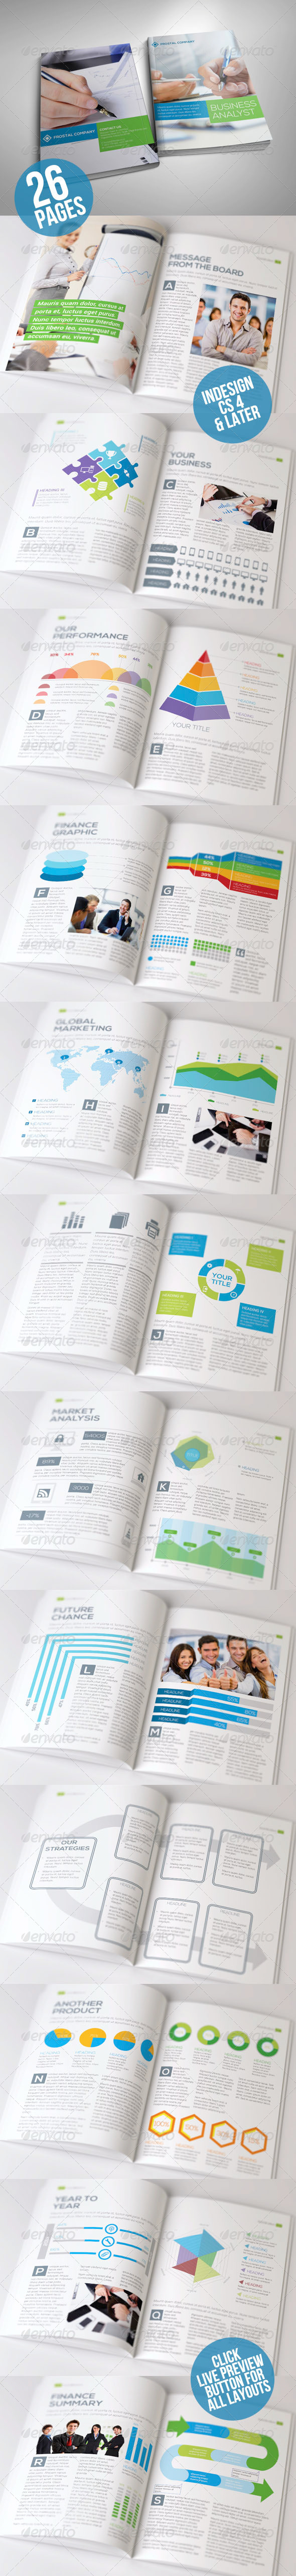 Infographic Annual Report Volume 2 - Corporate Brochures